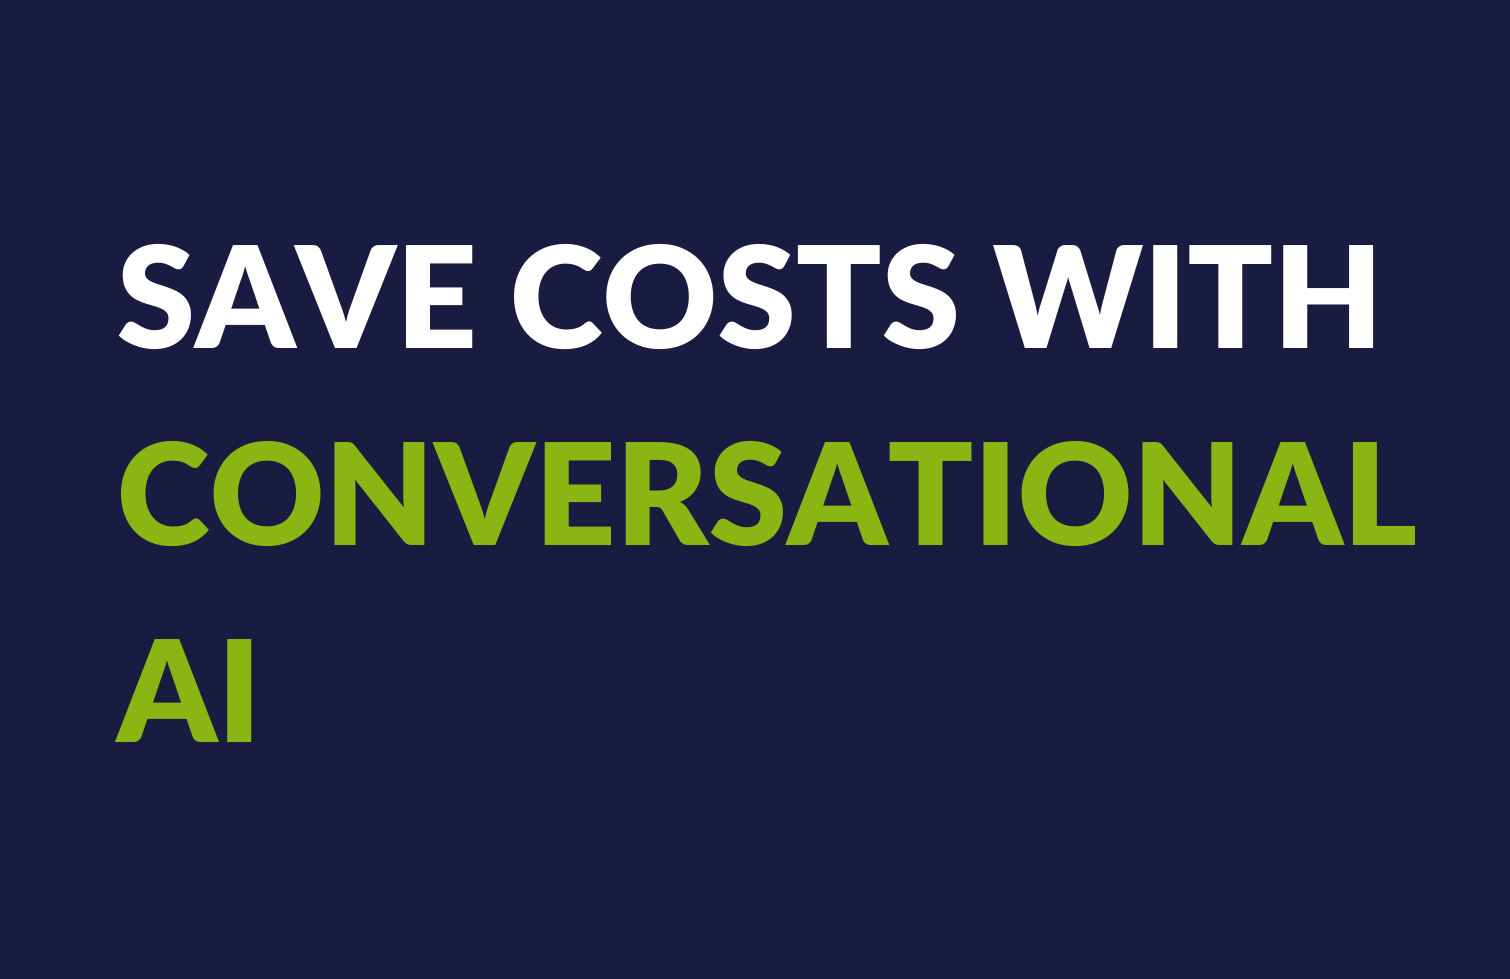 Save costs with Conversational AI